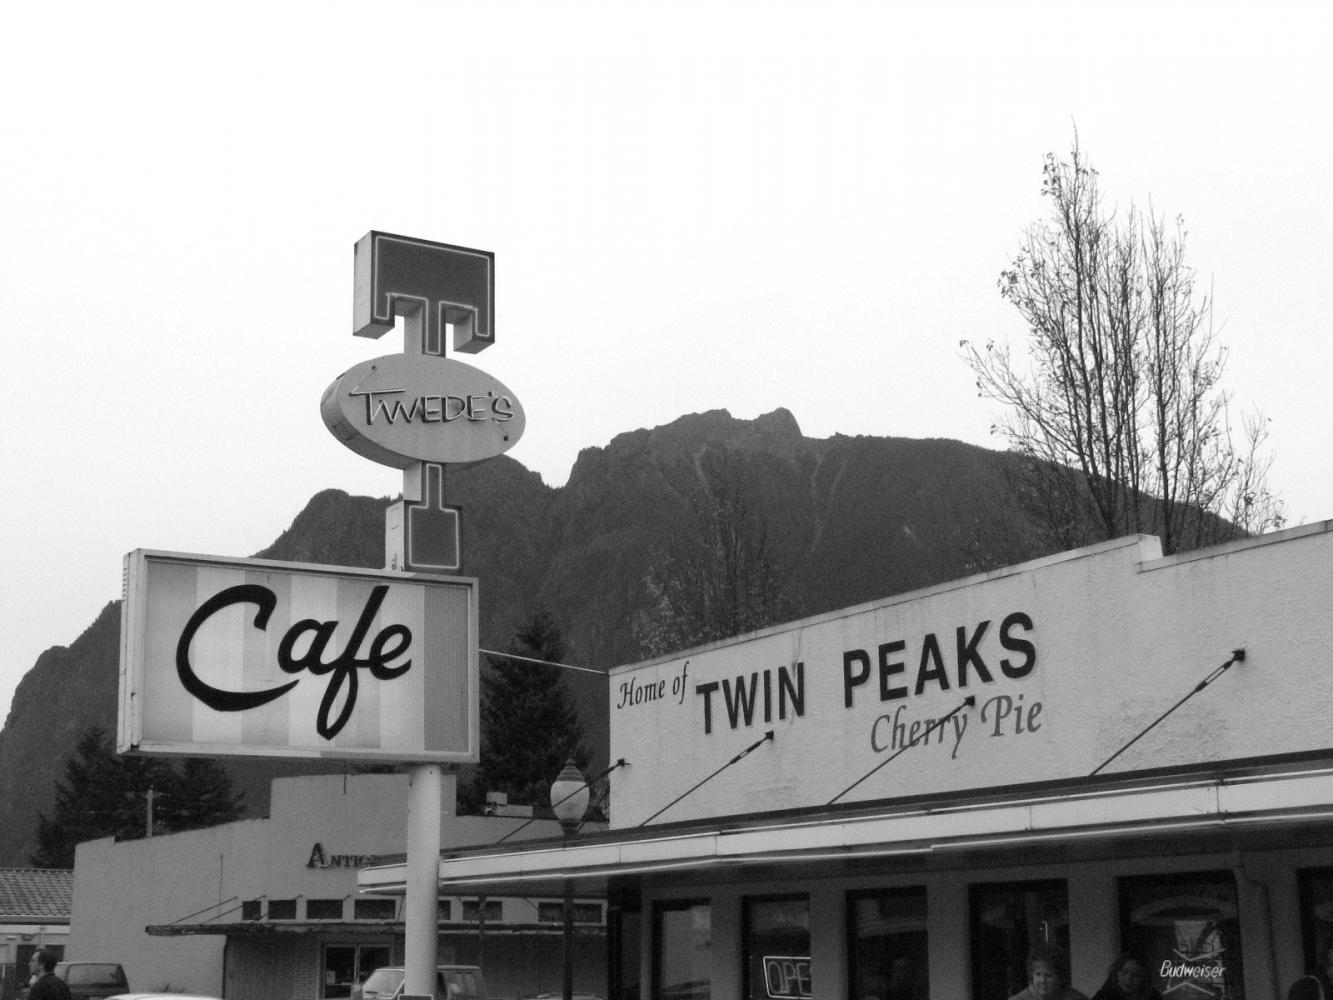 Twede's diner in Snoqualmie's North Bend served as a major setting during the original filming of Twin Peaks.